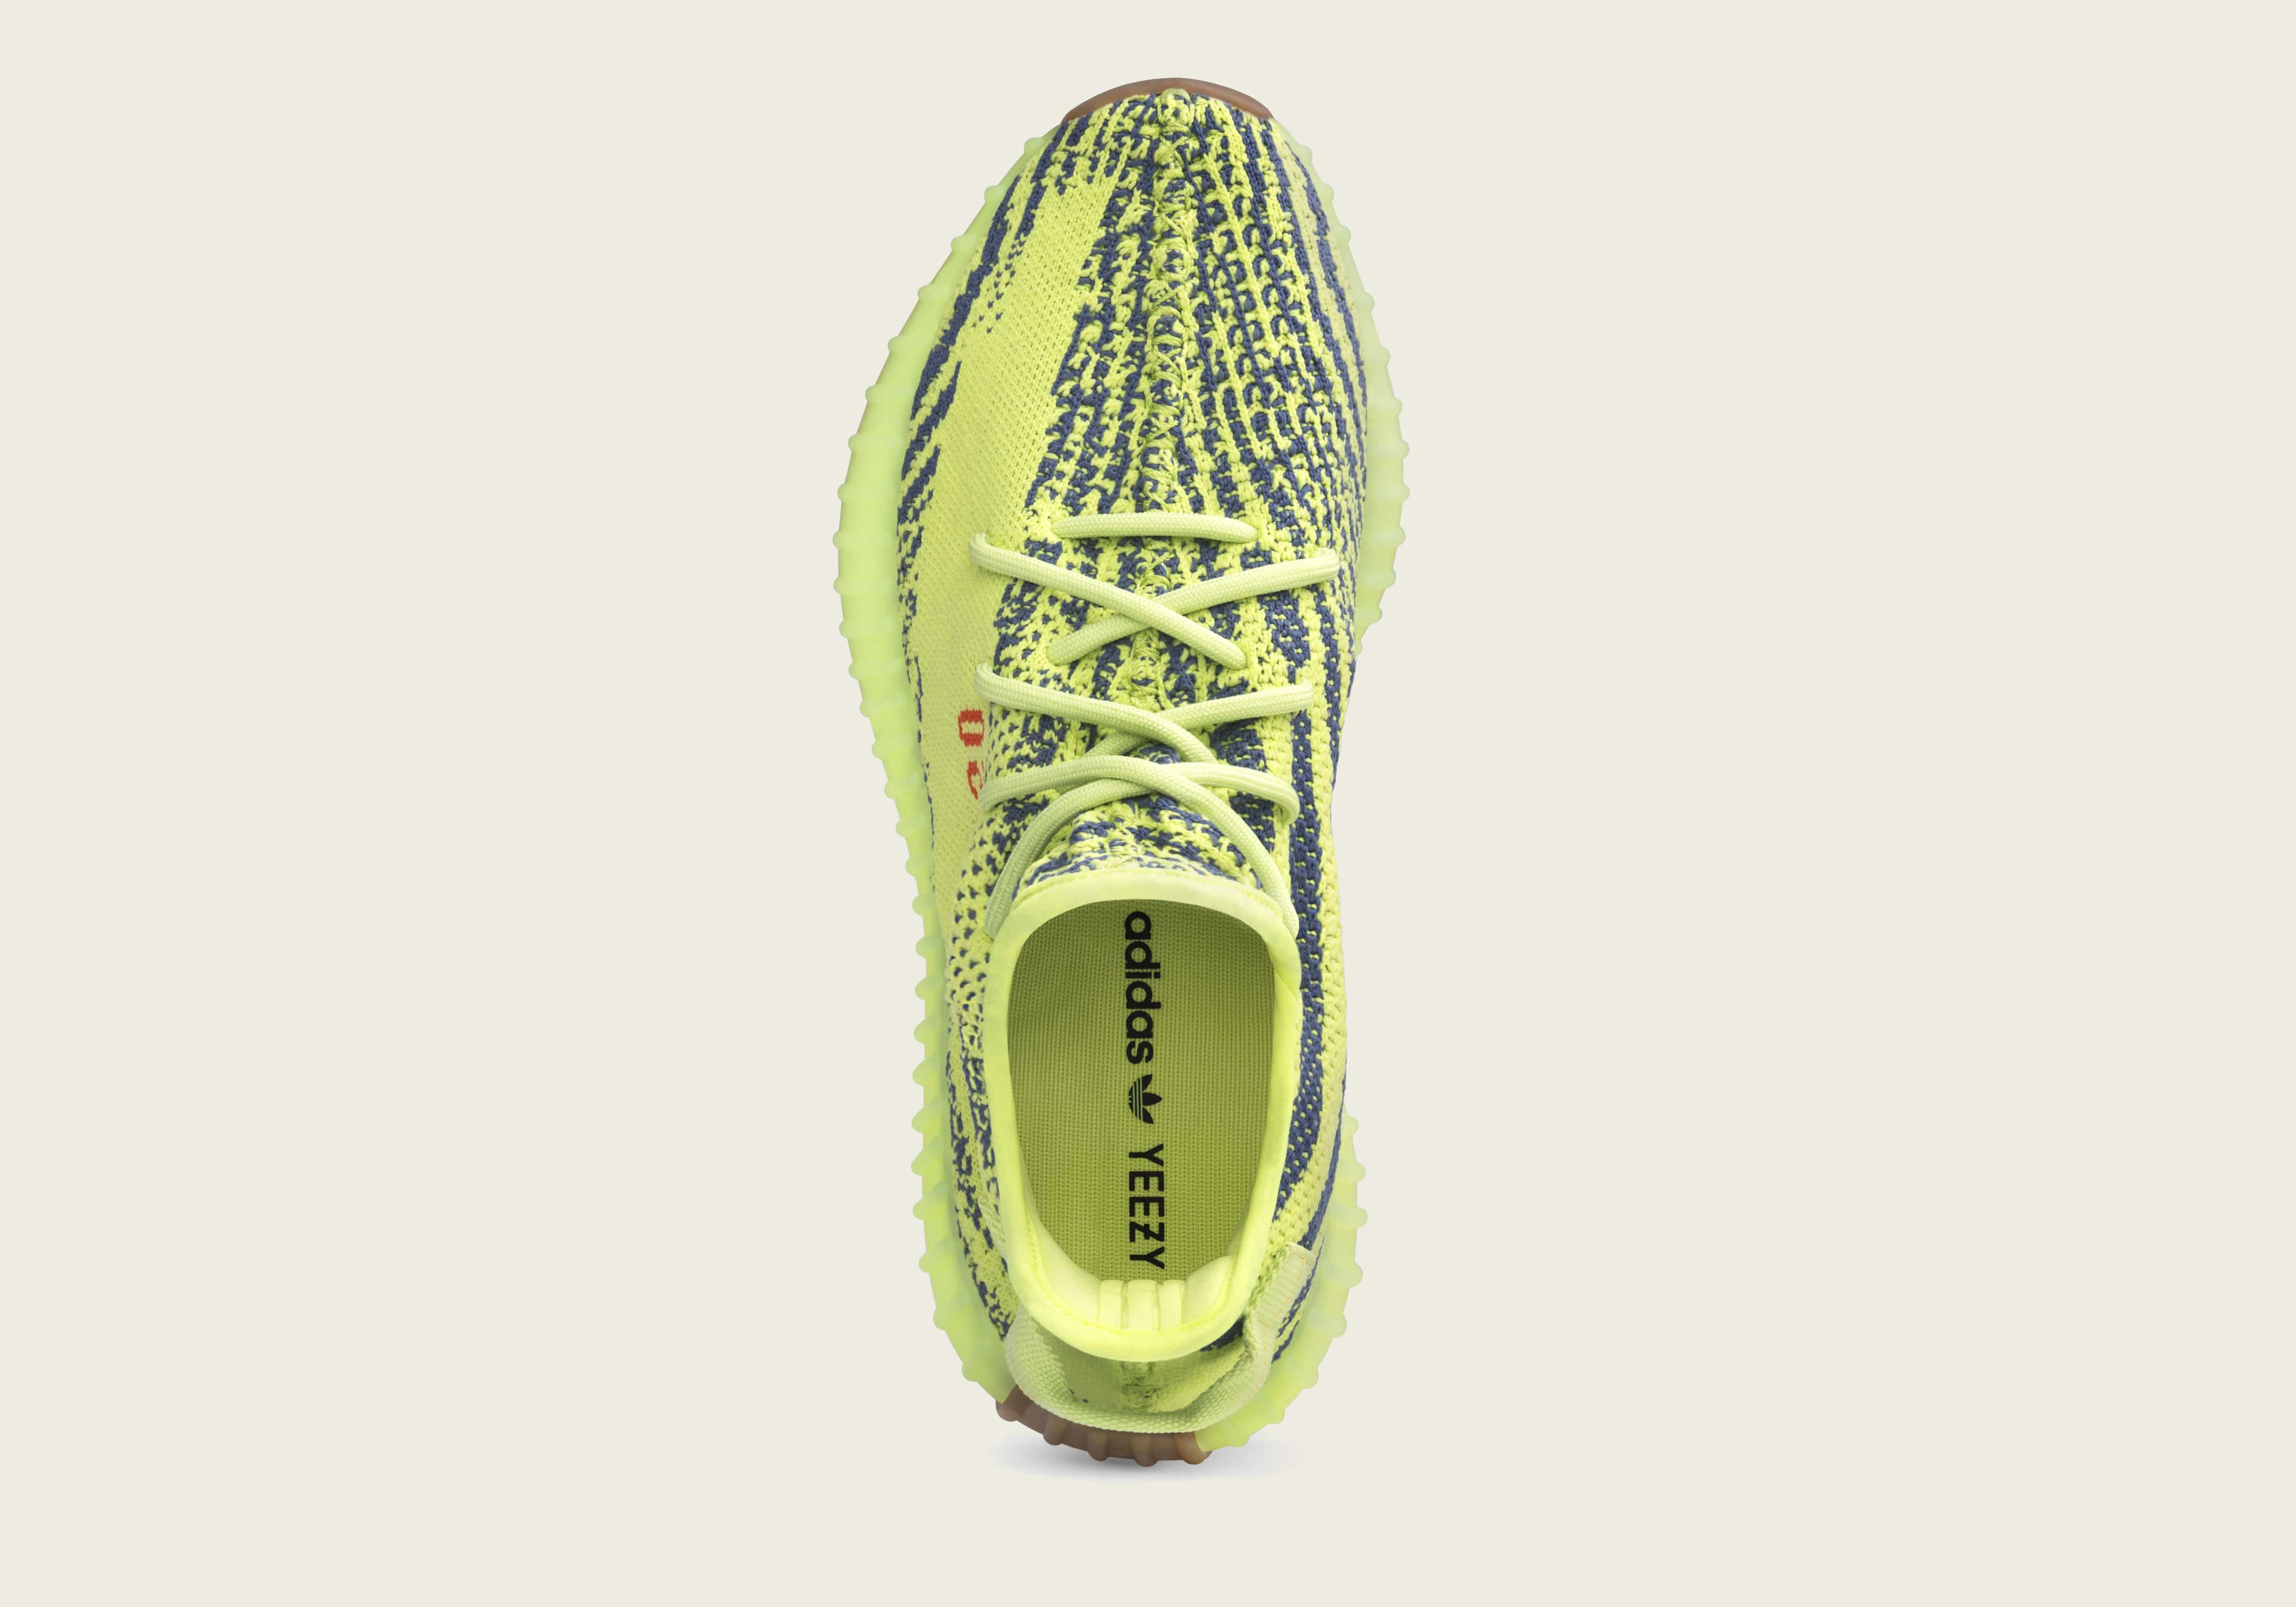 Adidas Yeezy Boost 350 V2 'Semi Frozen Yellow' B37572 (Top)